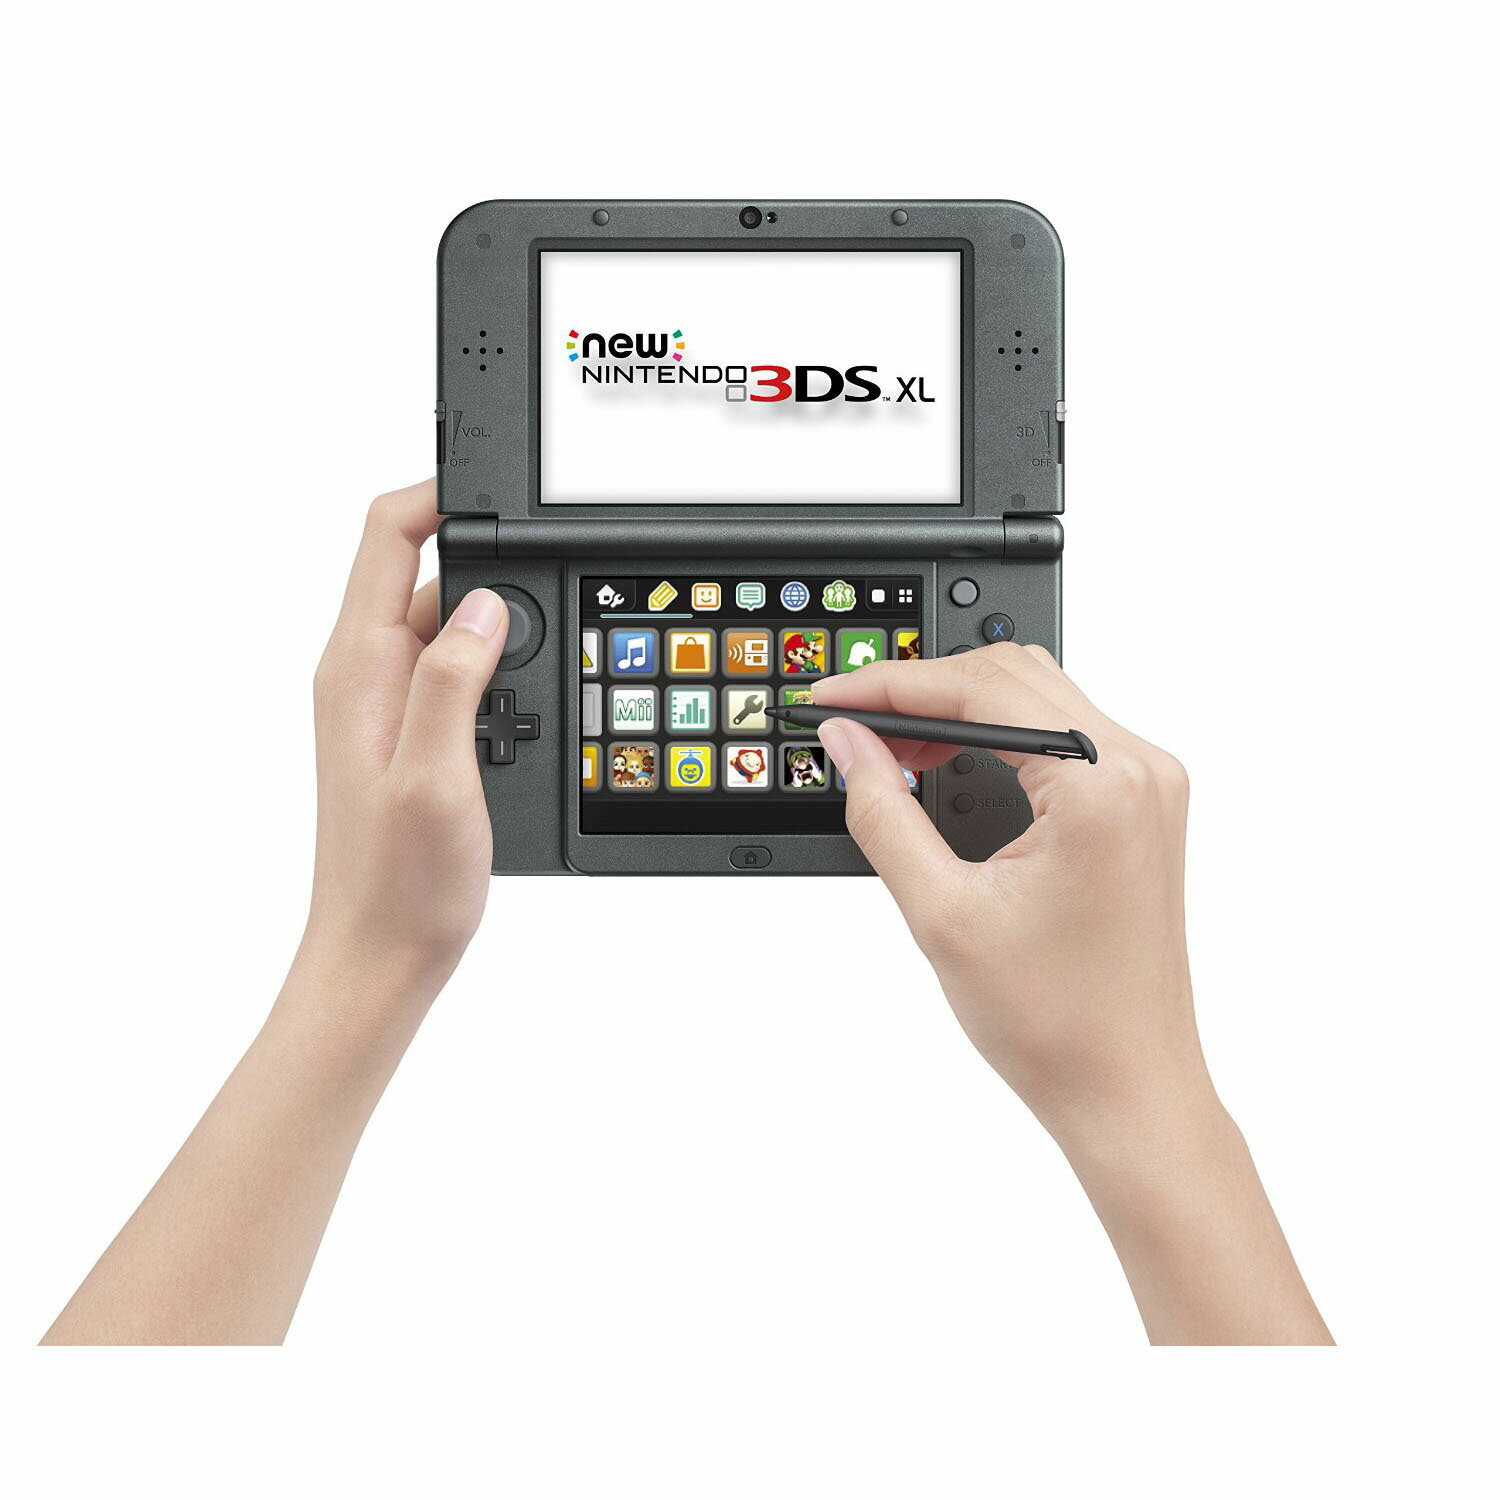 Nintendo New 3DS XL Handheld Video Game Console System - Black 2